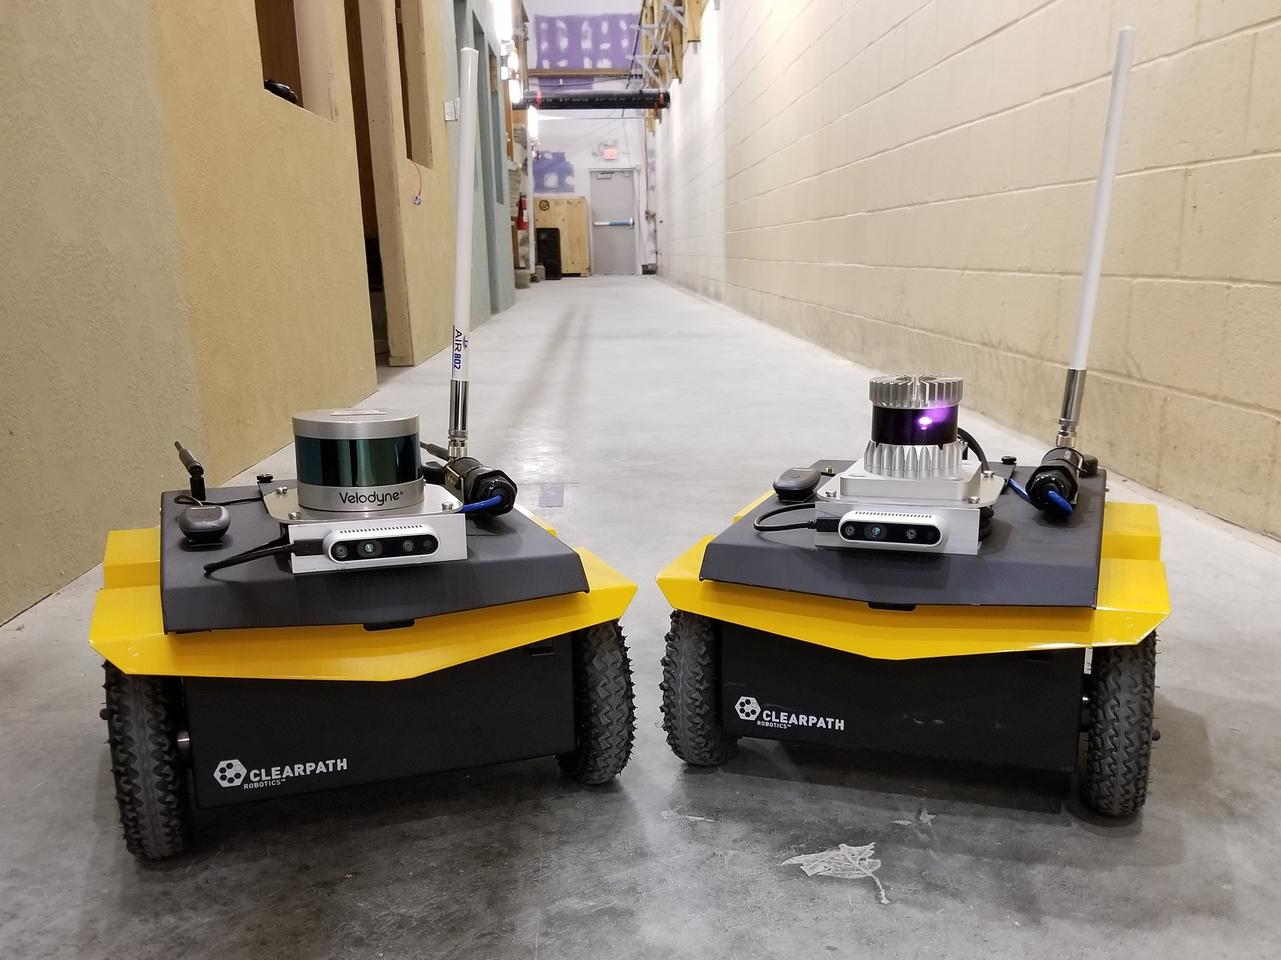 Two of the robots used in the study